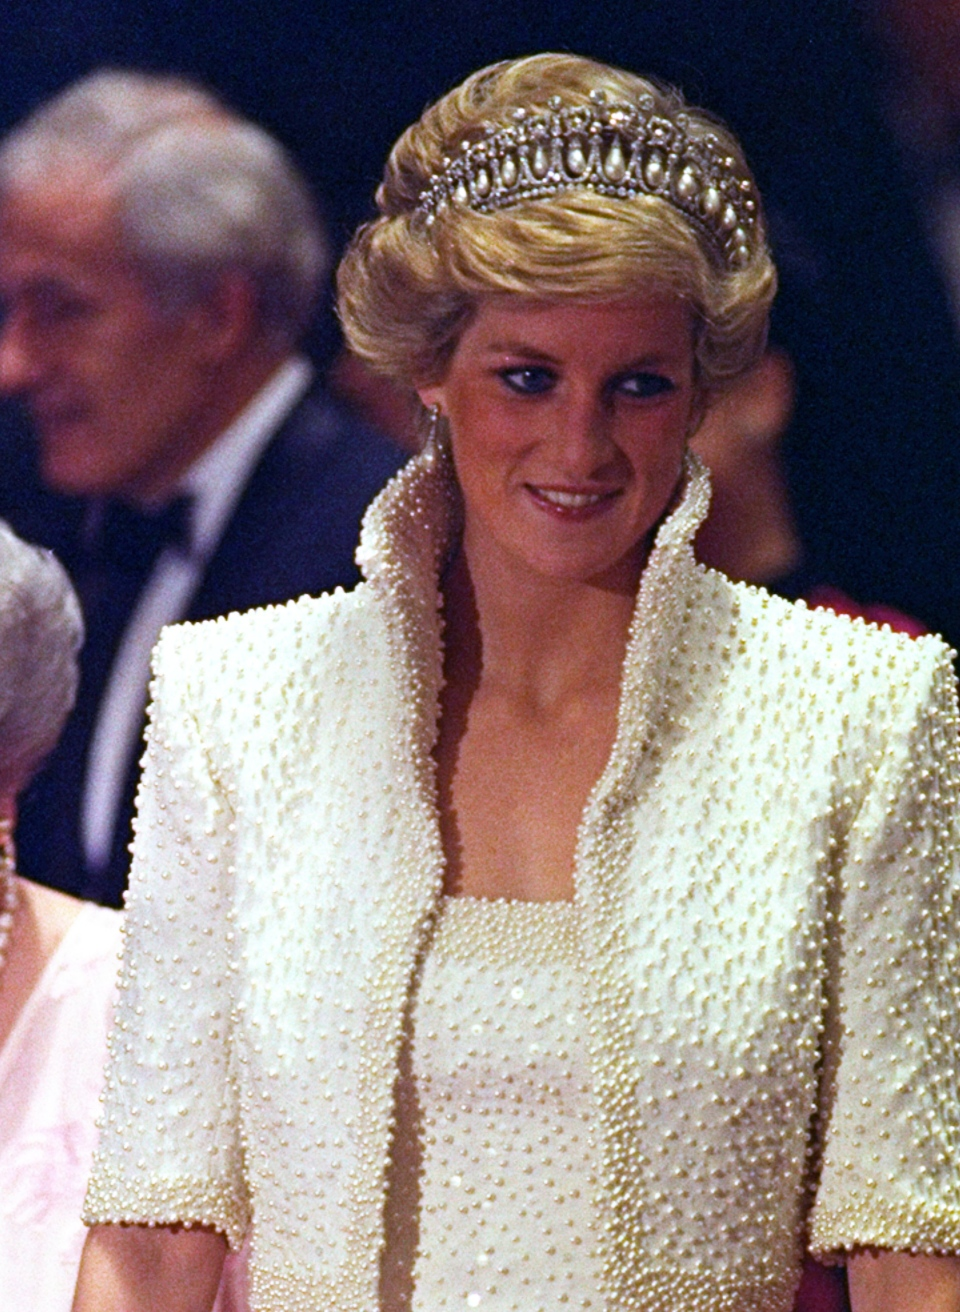 FILE - In this 1989 file photo, Diana, Princess of Wales smiles during an official visit to Hong Kong. (AP Photo/Liu Heung Shing, file)